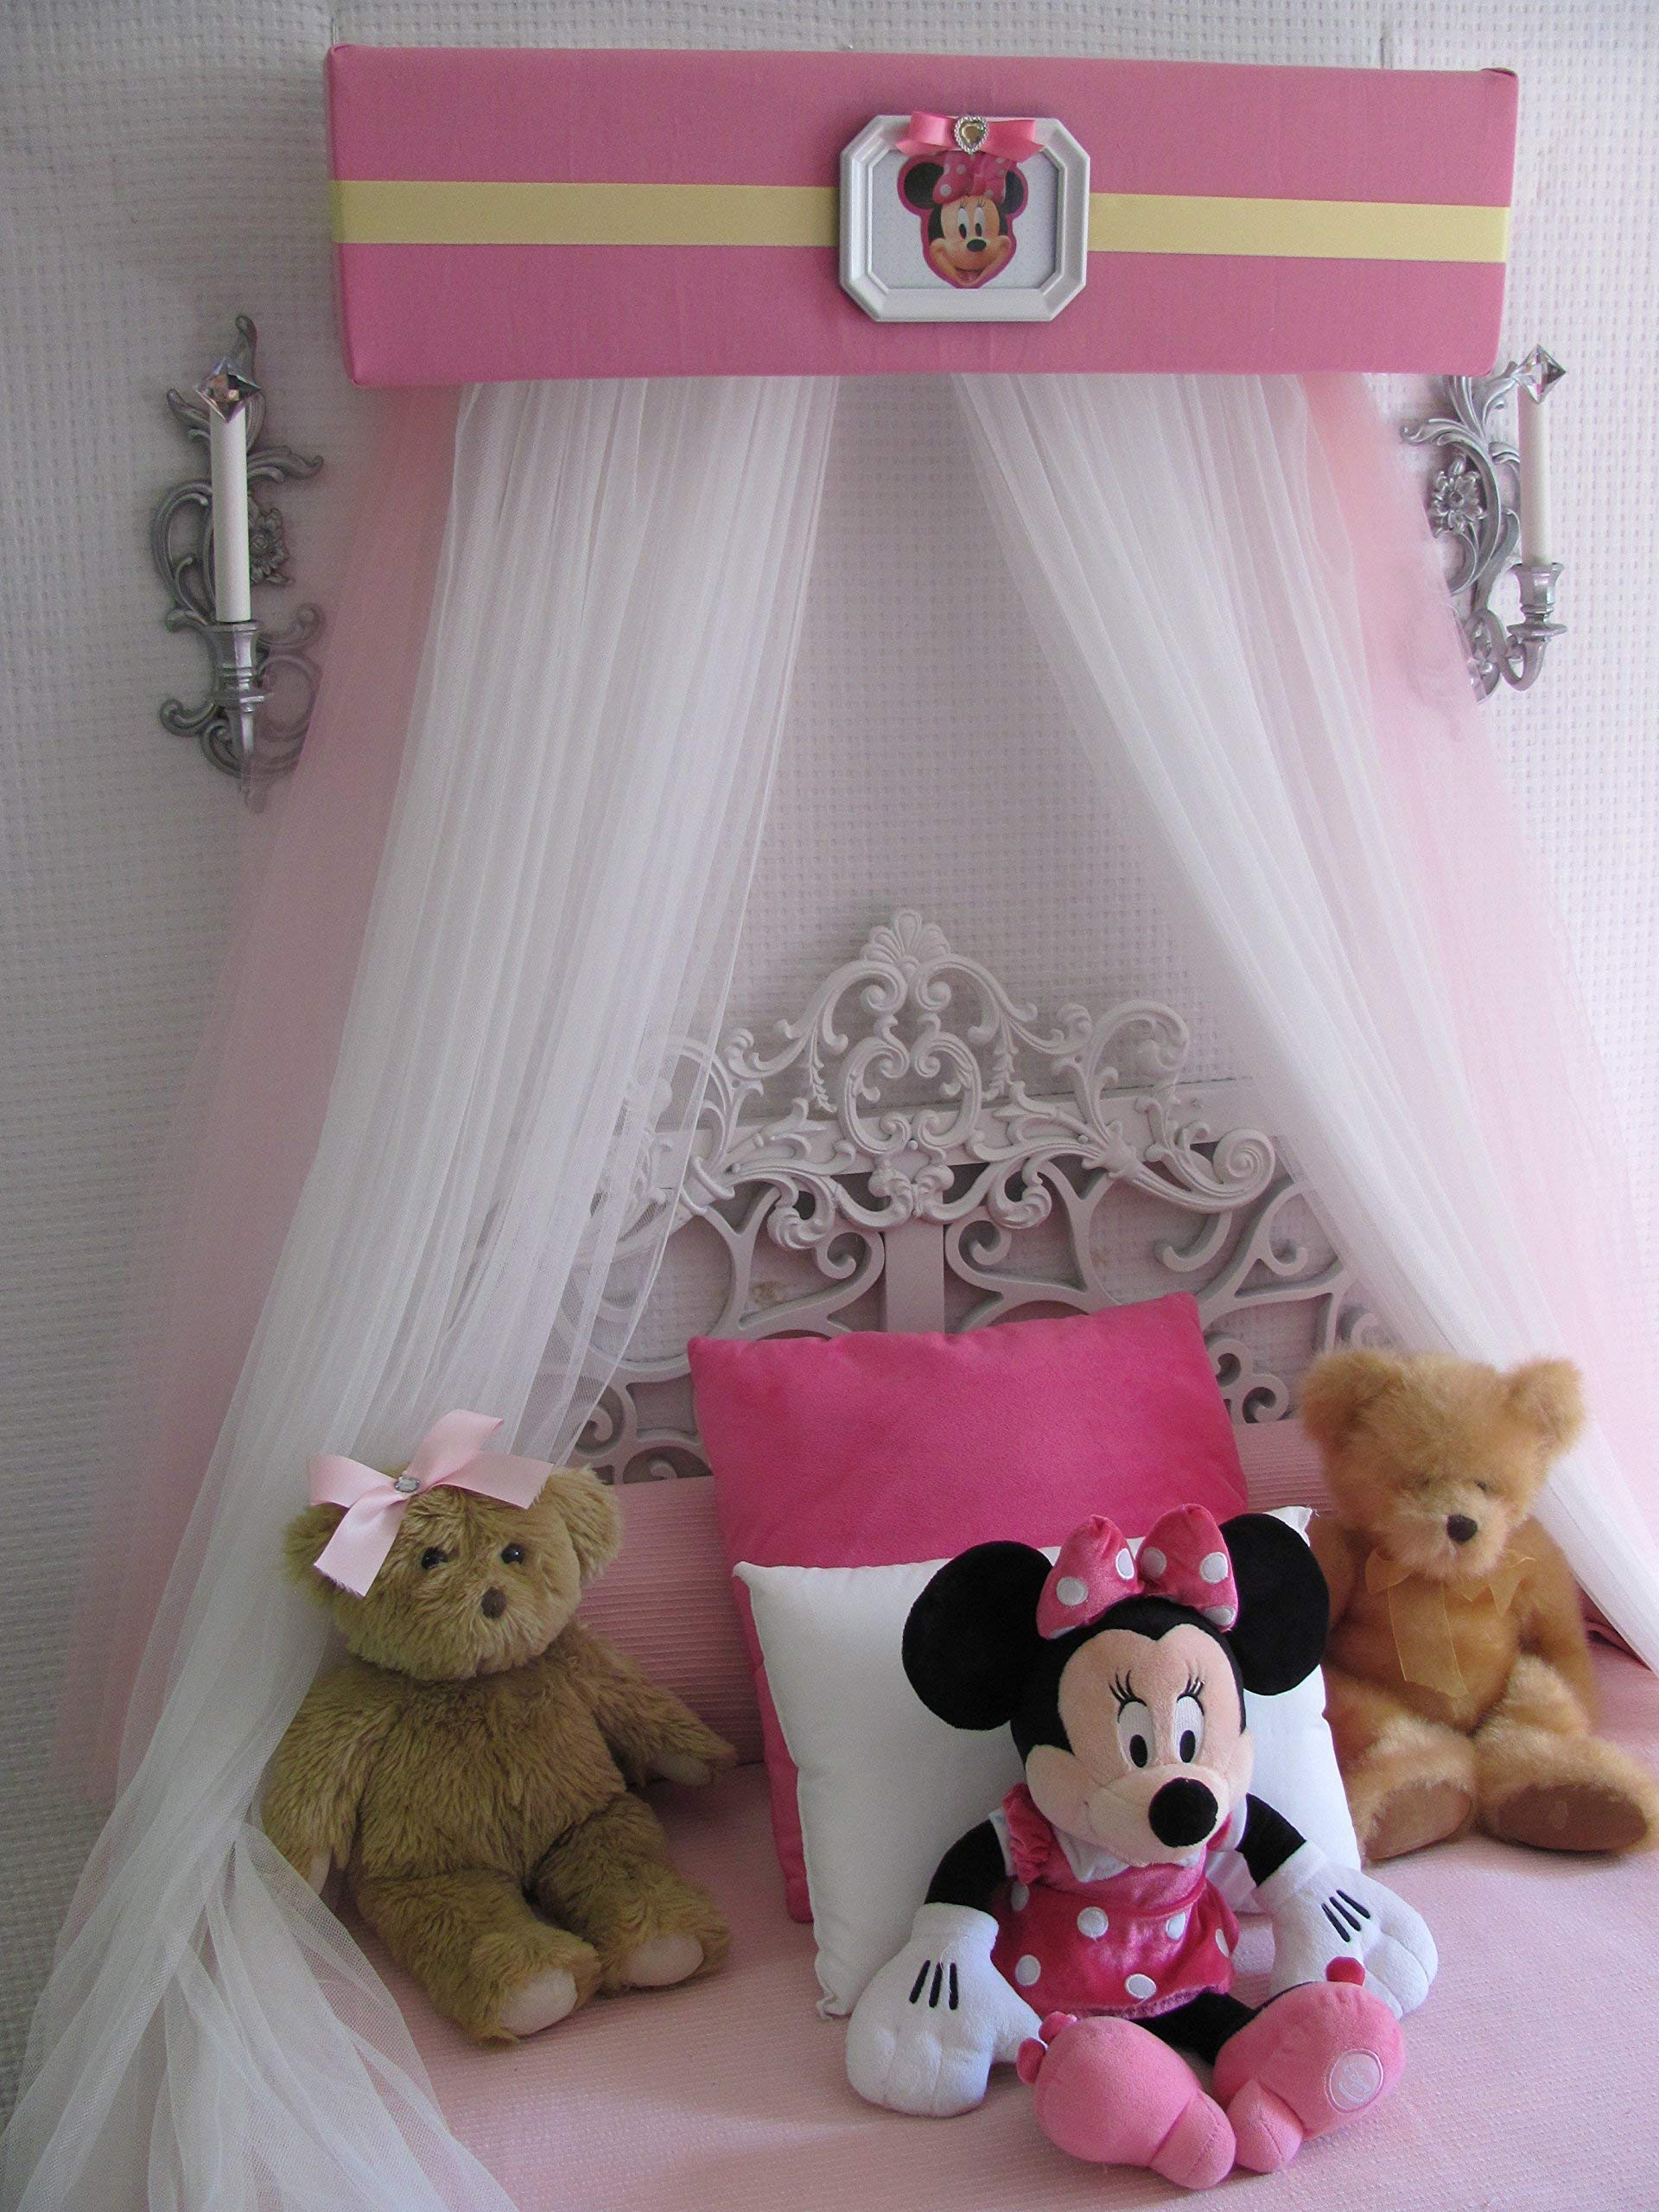 Disney Minnie Mouse Crib canopy cornice BED teester FULL Twin 30 inch Pink nursery So Zoey Boutique by So Zoey Boutique (Image #4)